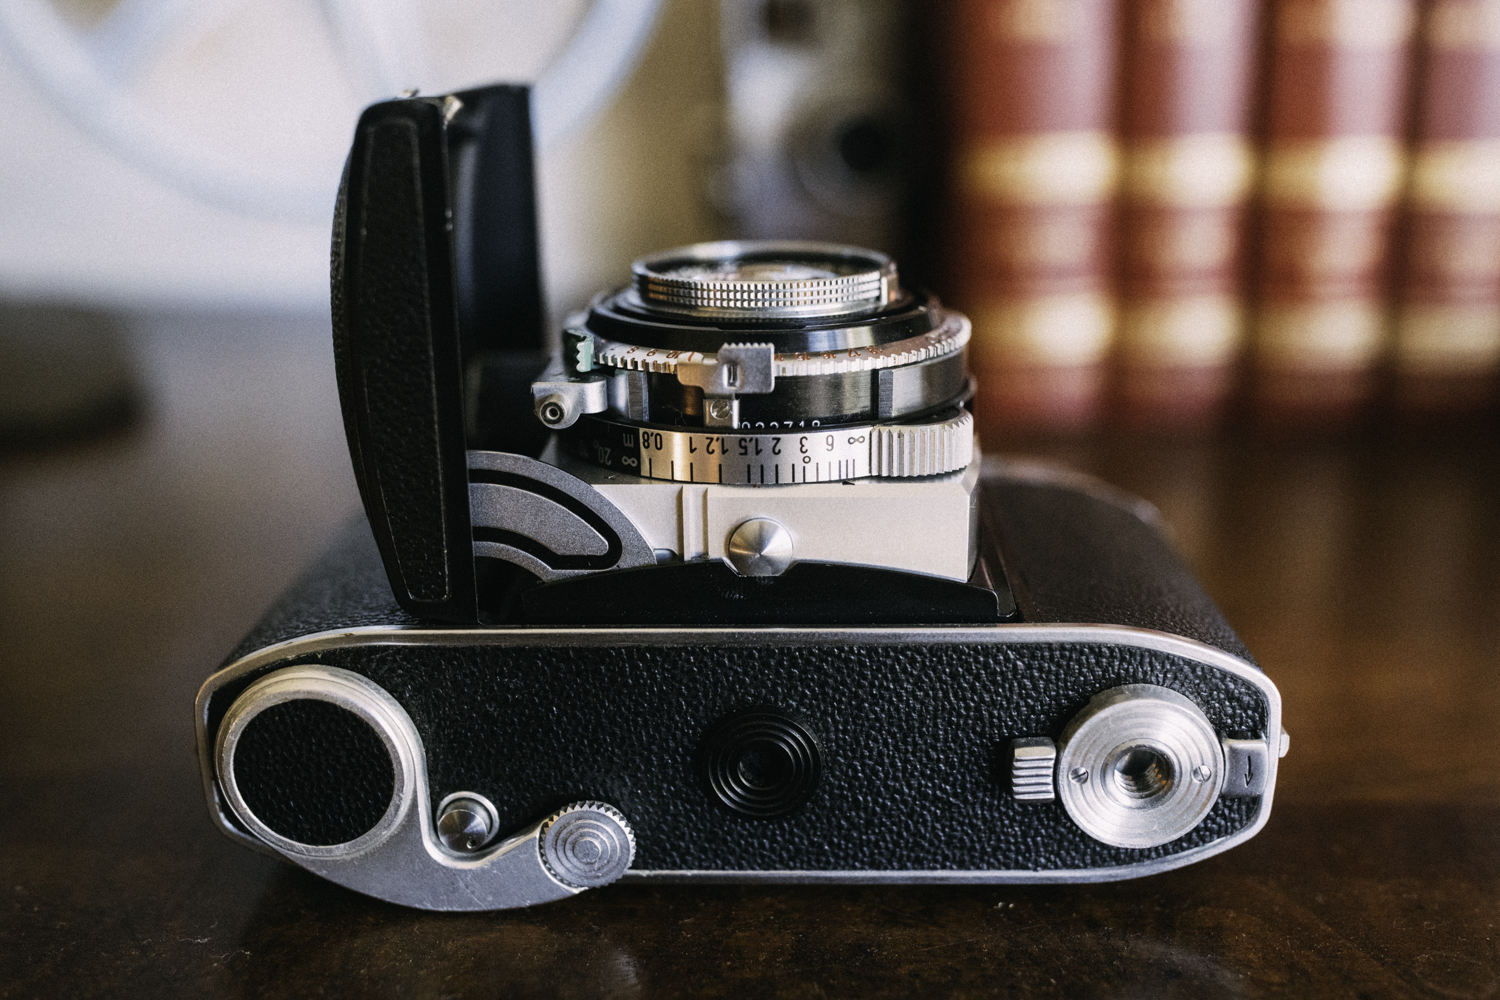 """Here's the camera bottom. From left to right, we have the film advance lever, a connector for a special flash unit for the camera, and the twisting lock for the film door, which surrounds the 1/4"""" mounting point."""